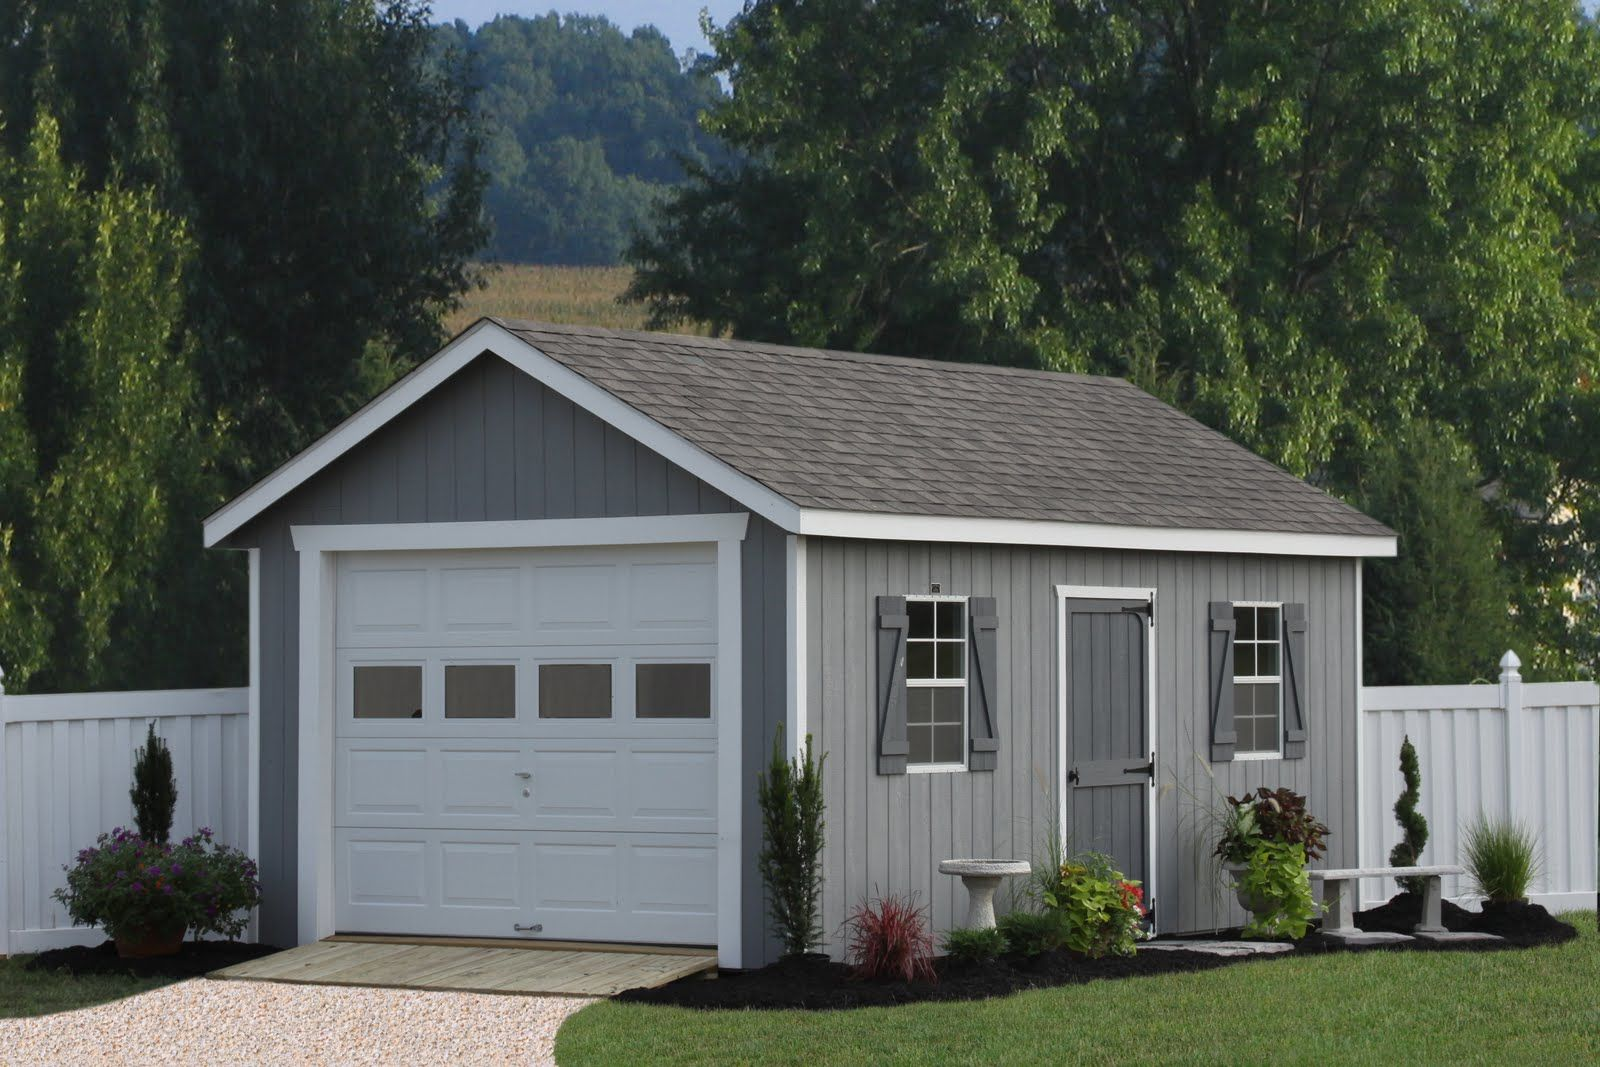 Add on garage plans 12x20 classic one car garage for Small outdoor sheds for sale